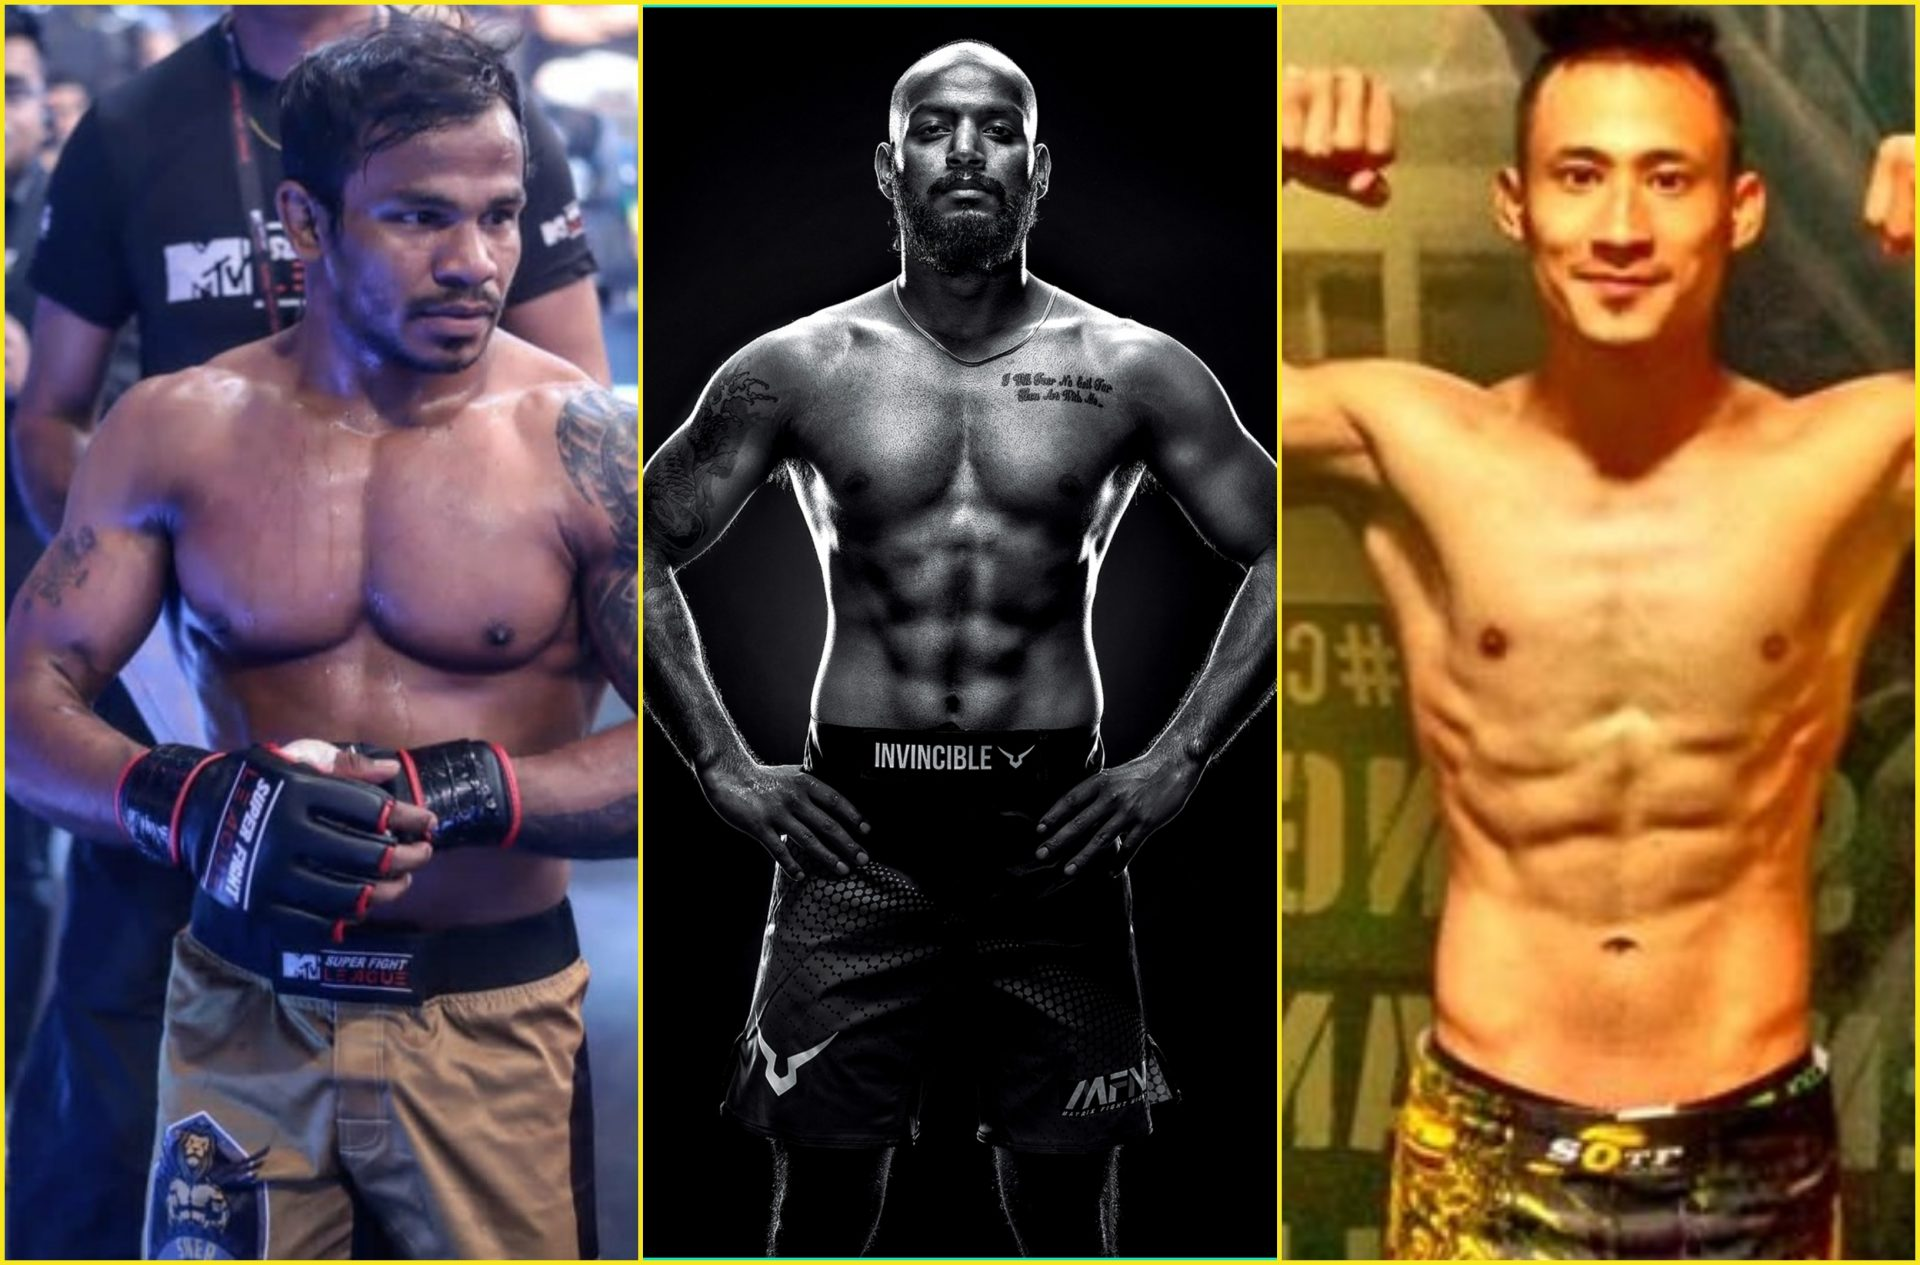 Five Indian fighters will have a shot at qualifying for PFL's Million Dollar competition - PFL